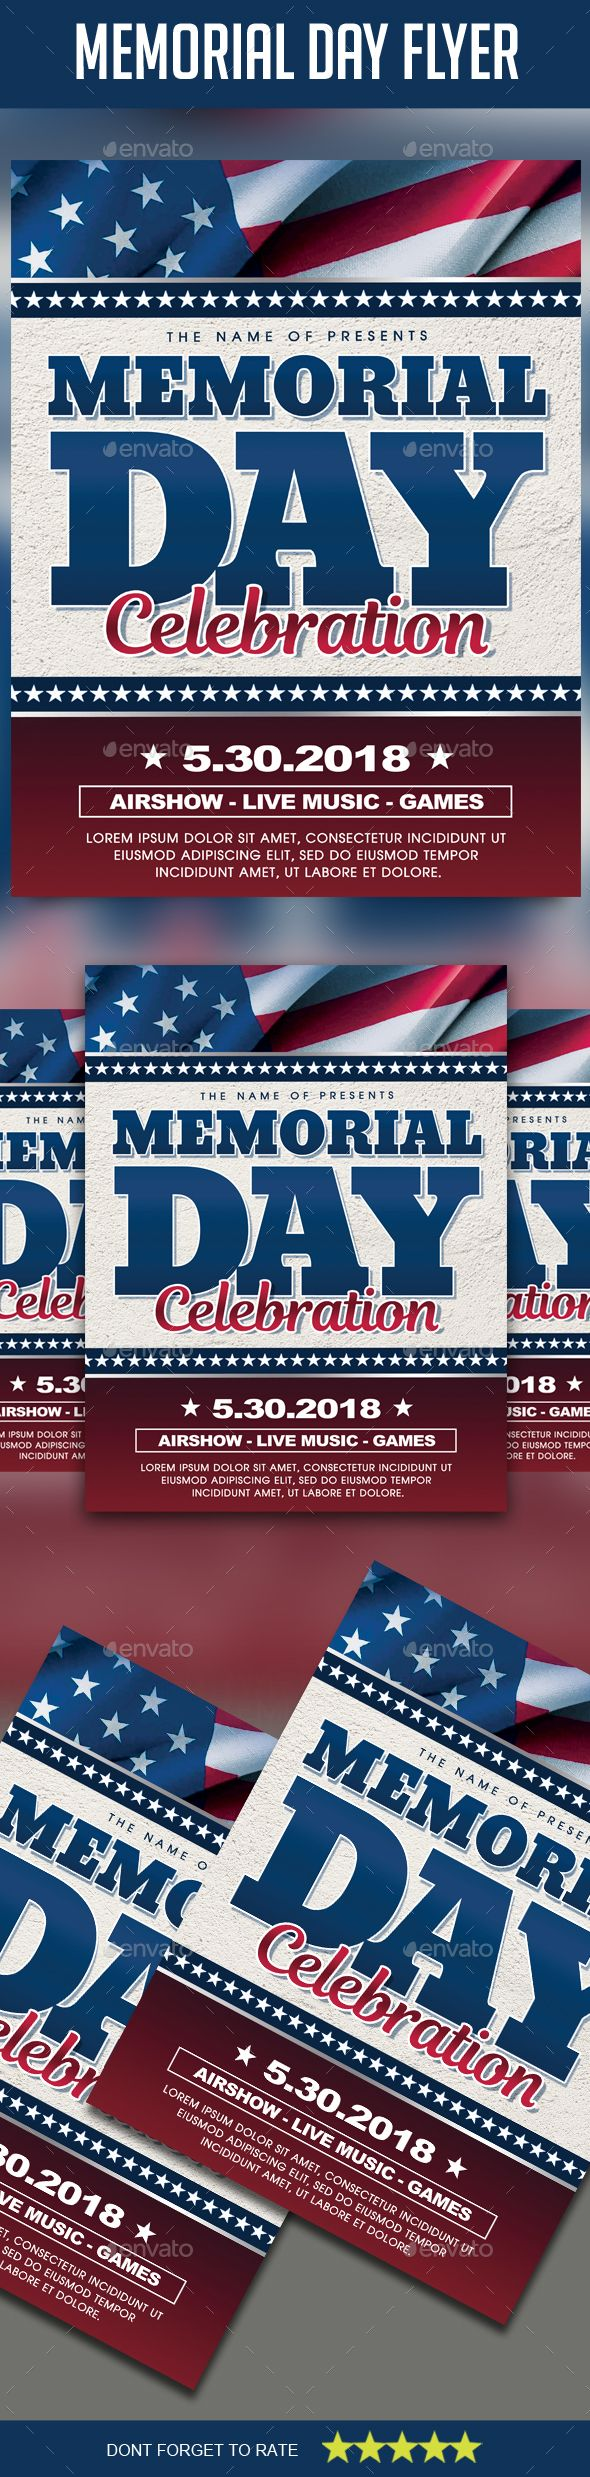 memorial day flyer event flyers flyer design templates and party